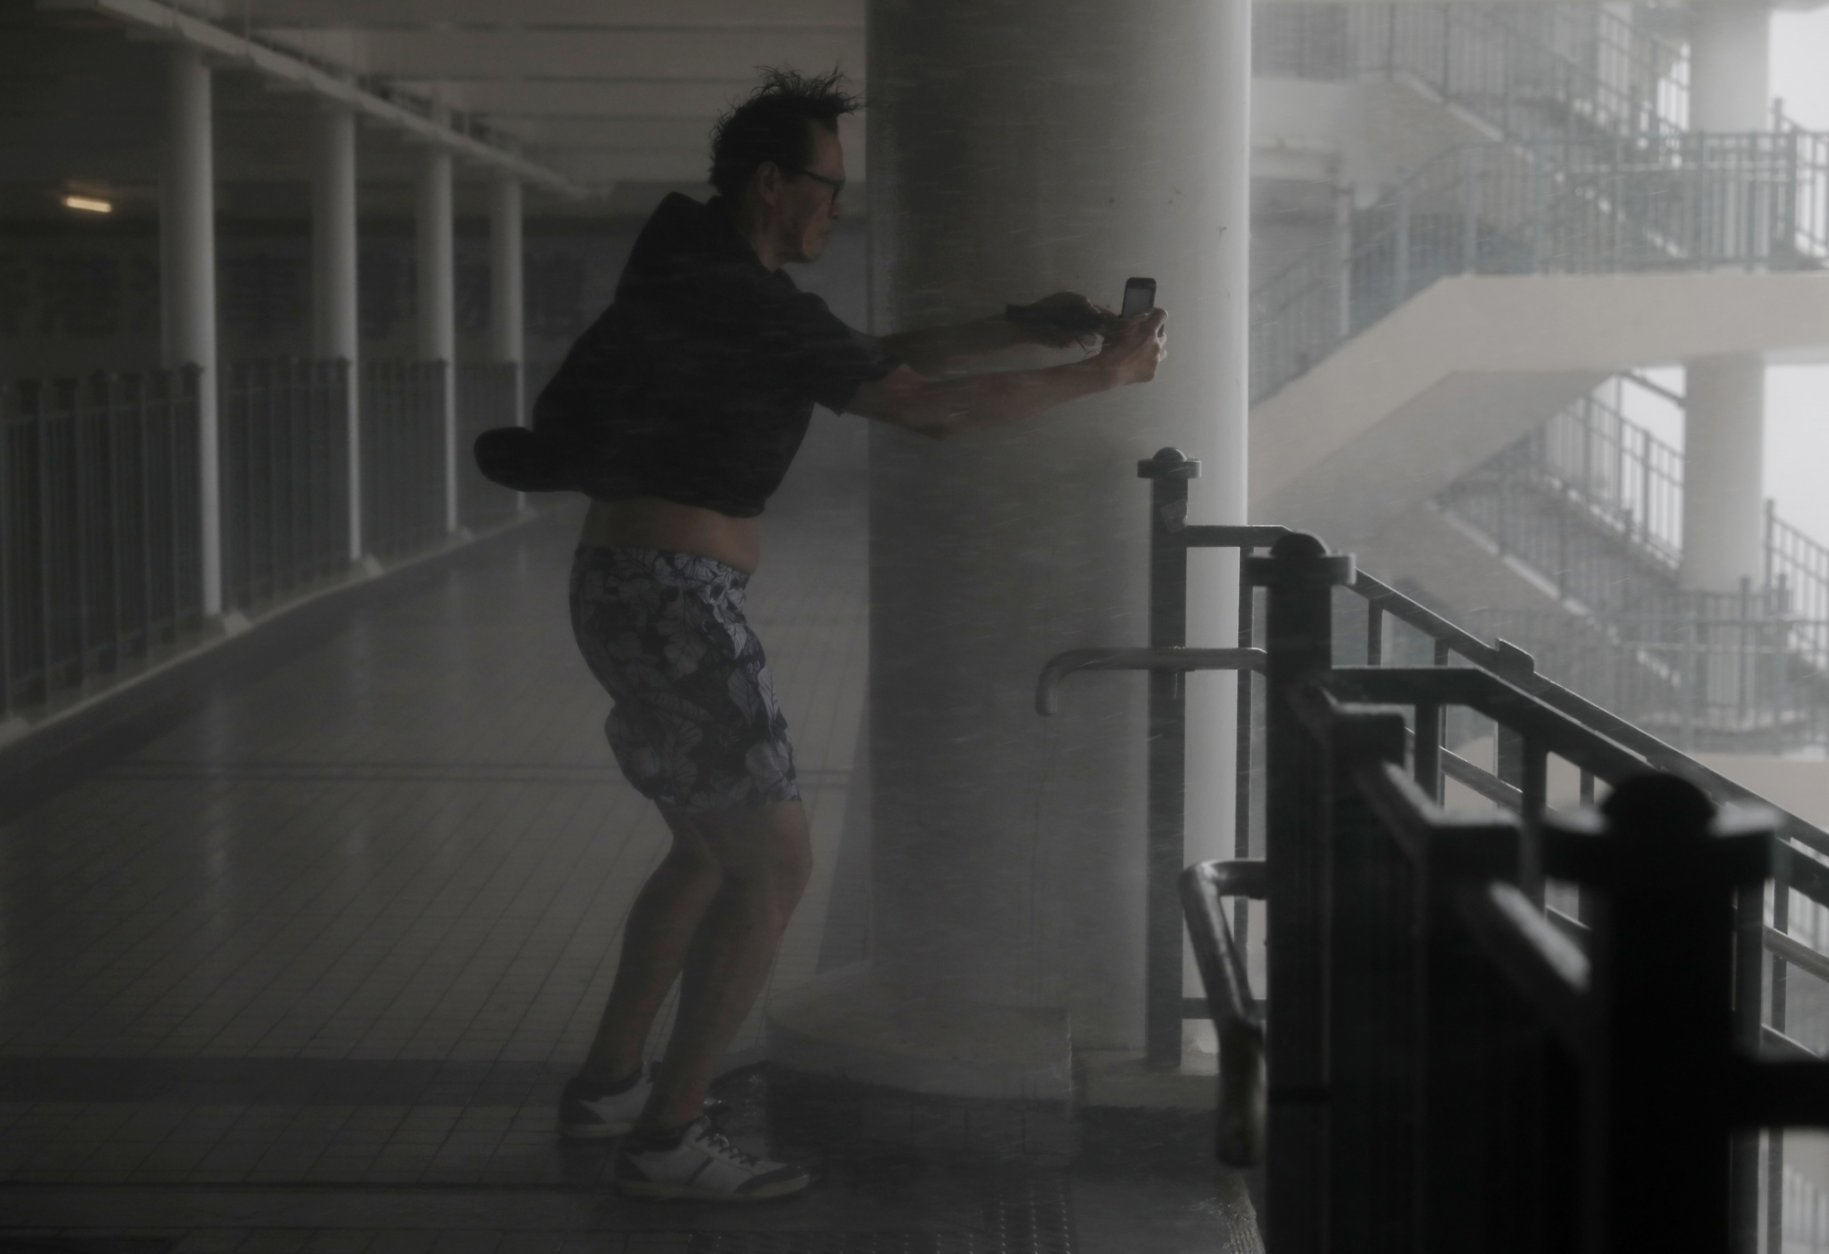 A man takes pictures against strong winds from Typhoon Mangkhut on the waterfront of Victoria Habour Hong Kong, Sunday, Sept. 16, 2018. Hong Kong and southern China hunkered down as strong winds and heavy rain from Typhoon Mangkhut lash the densely populated coast. The biggest storm of the year left at least 28 dead from landslides and drownings as it sliced through the northern Philippines. (AP Photo/Vincent Yu)